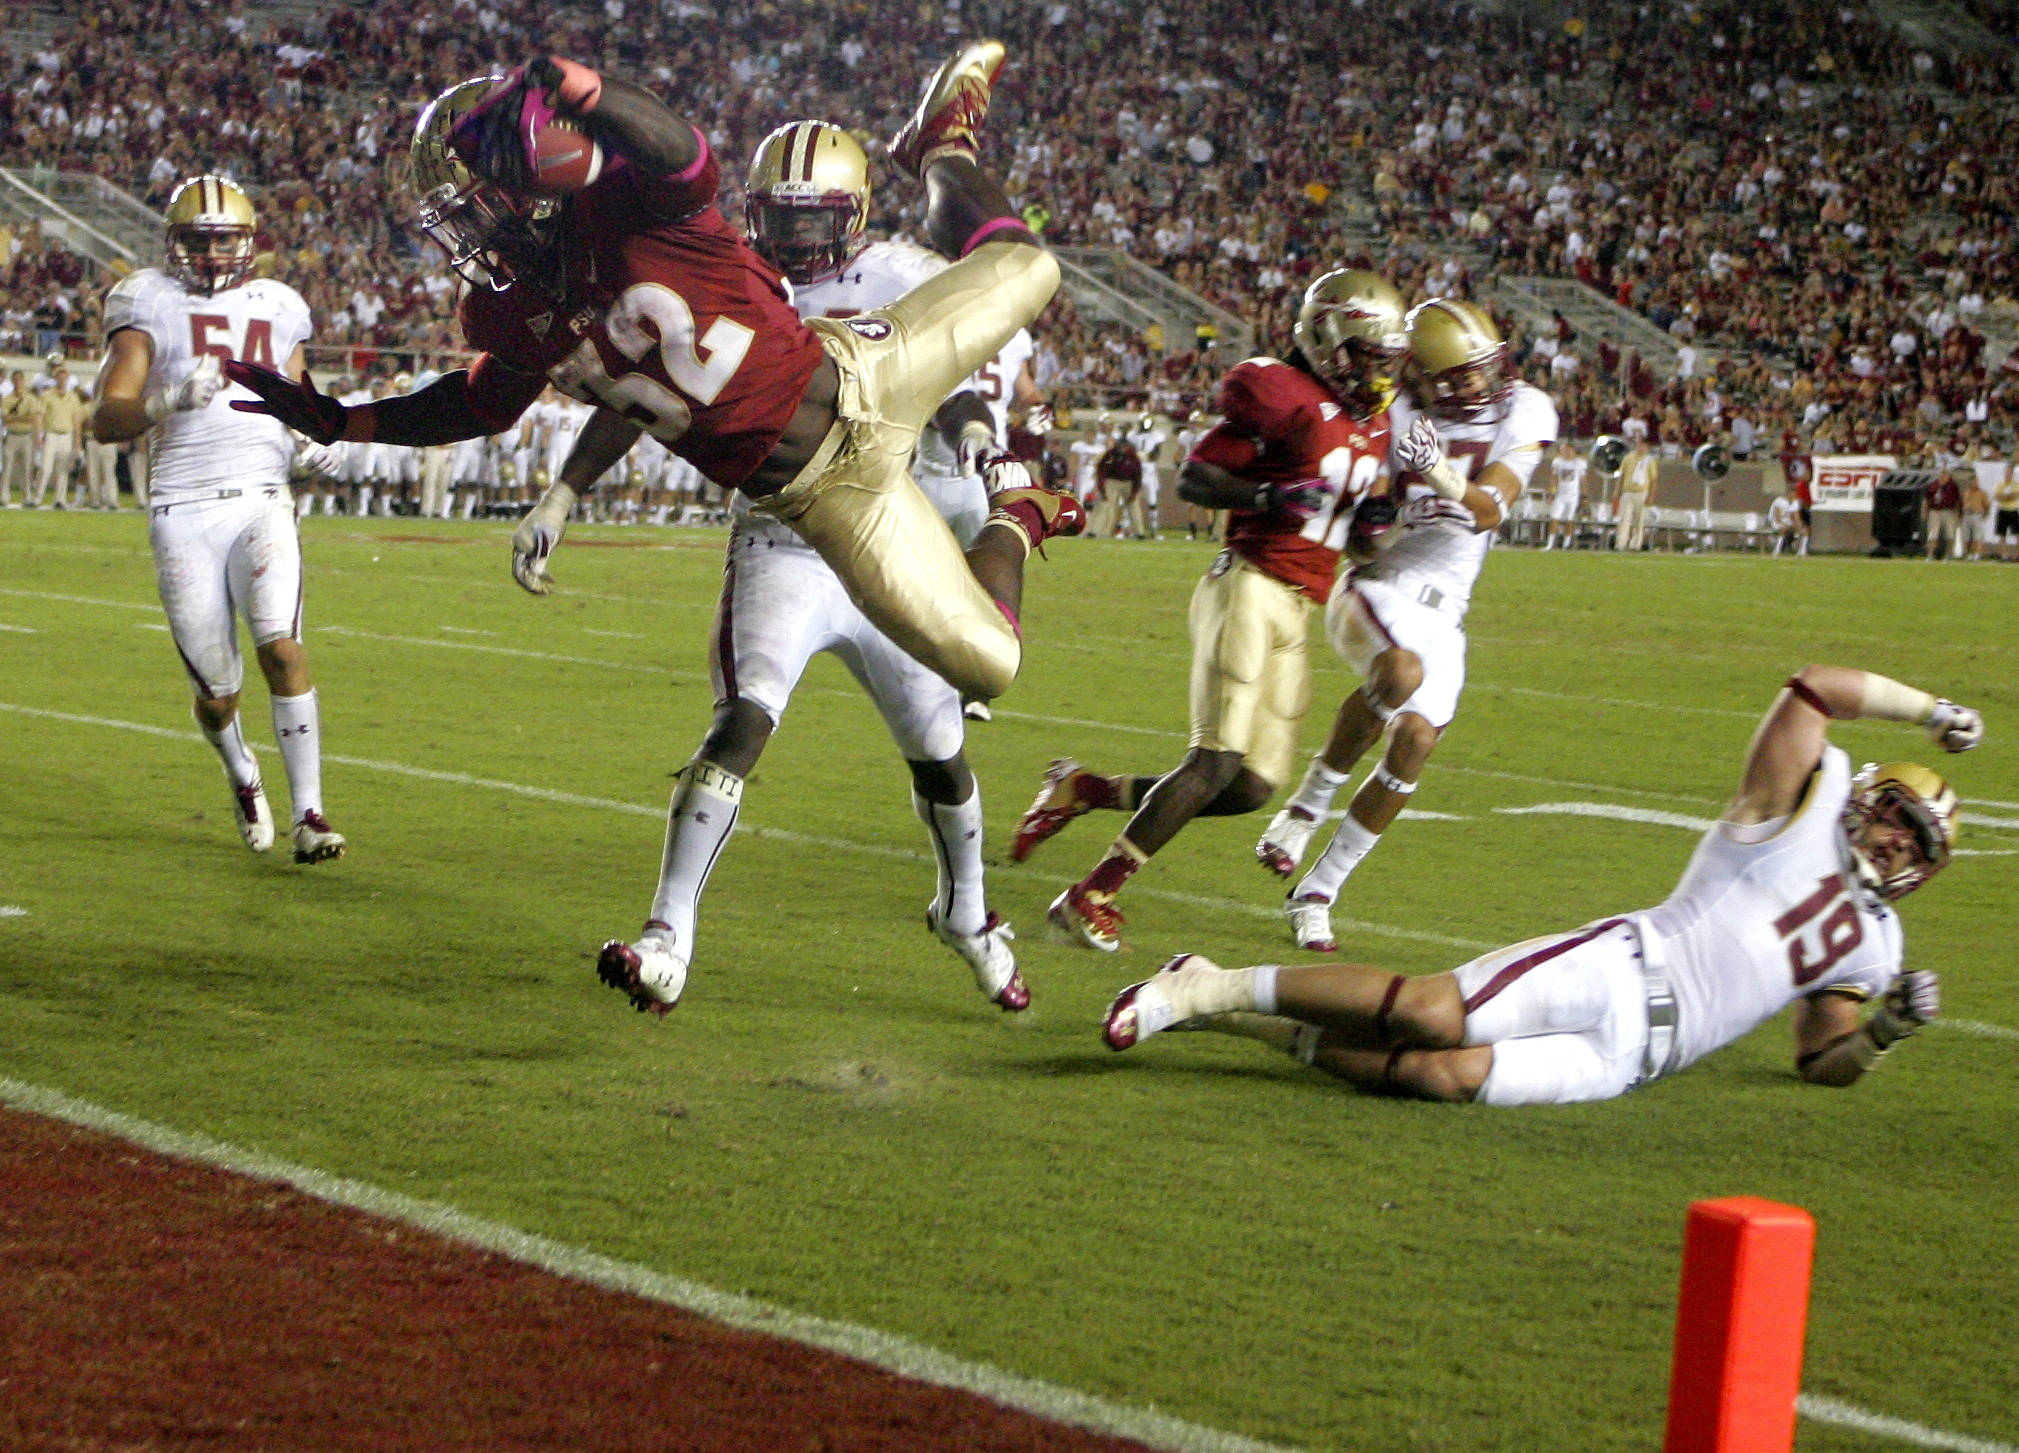 Florida State running back James Wilder Jr. (32) flies over Boston College defensive back Sean Sylvia (19) into the end zone with a 12-yard pass reception in the fourth quarter. (AP Photo/Phil Sears)